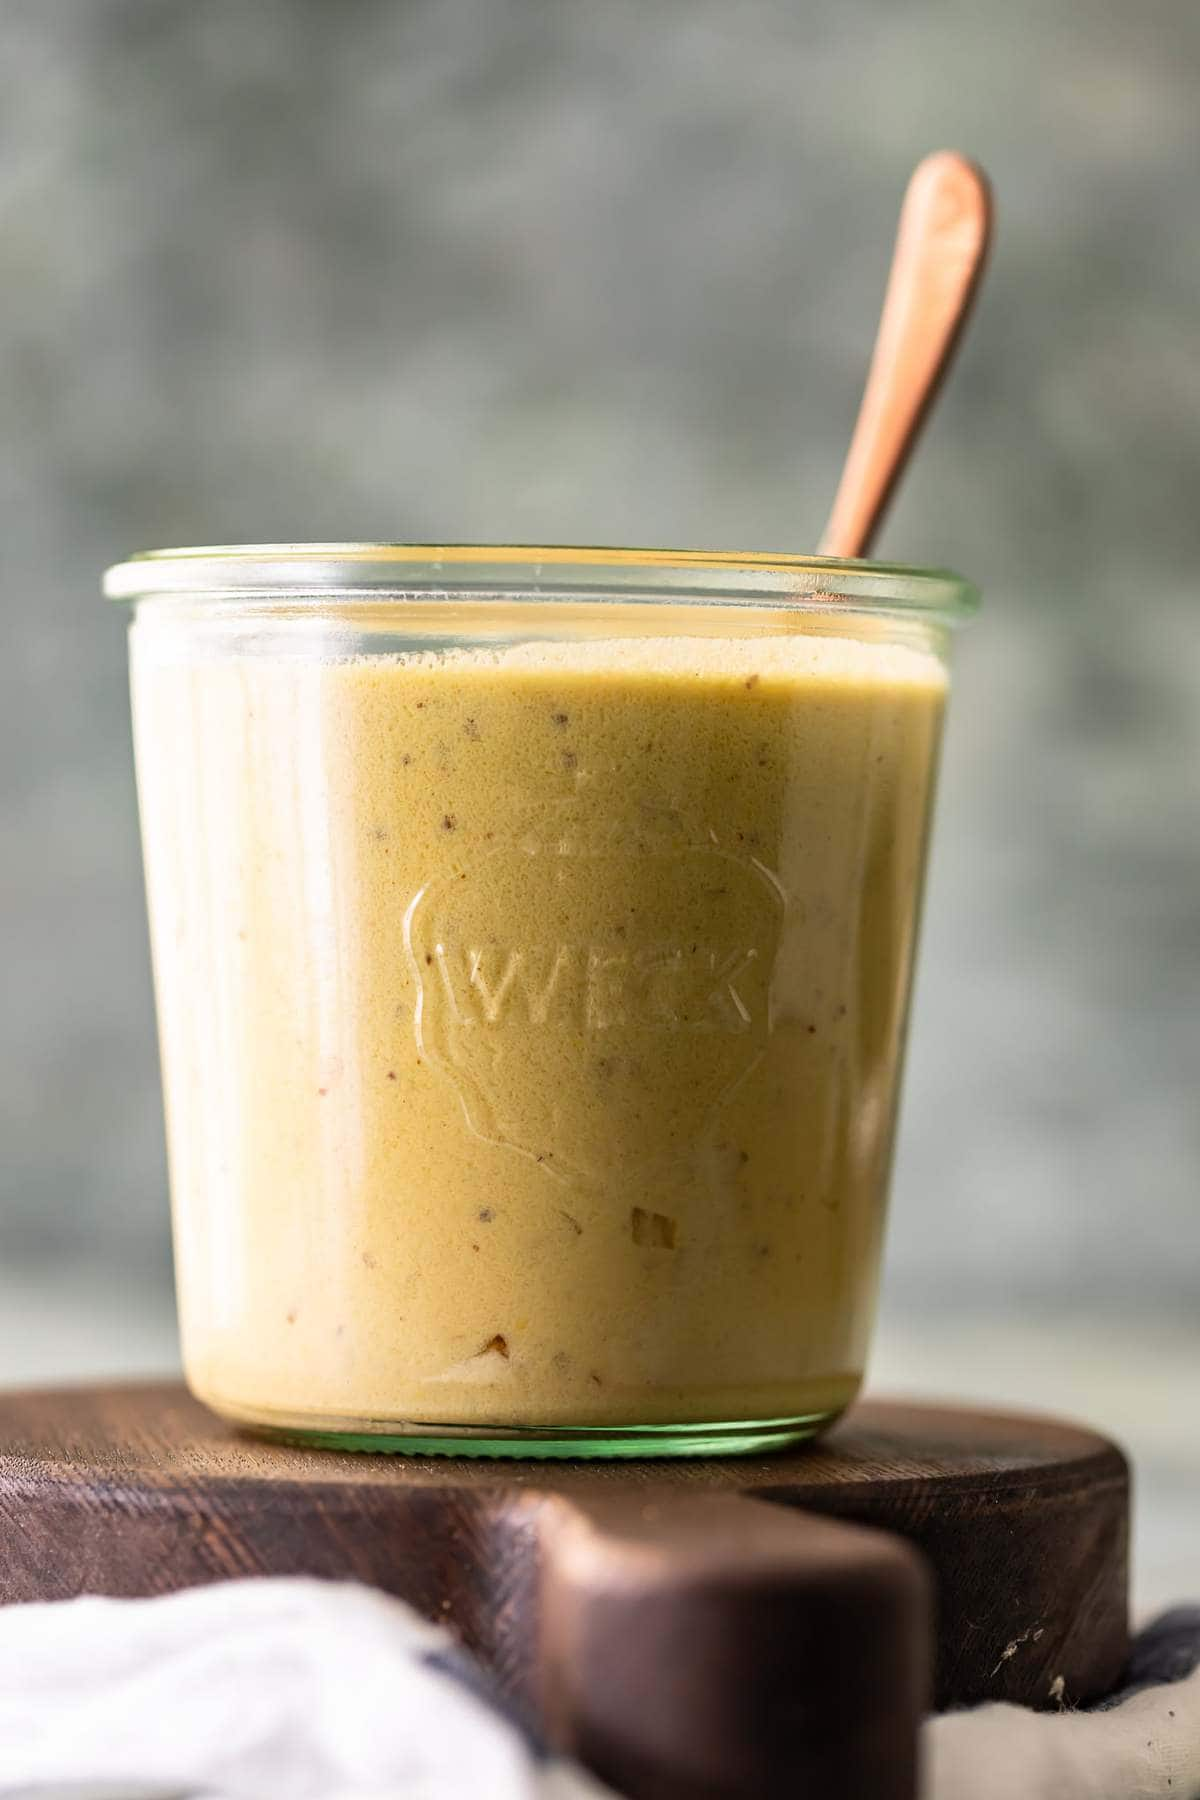 Side view of mustard cream sauce in a glass jar